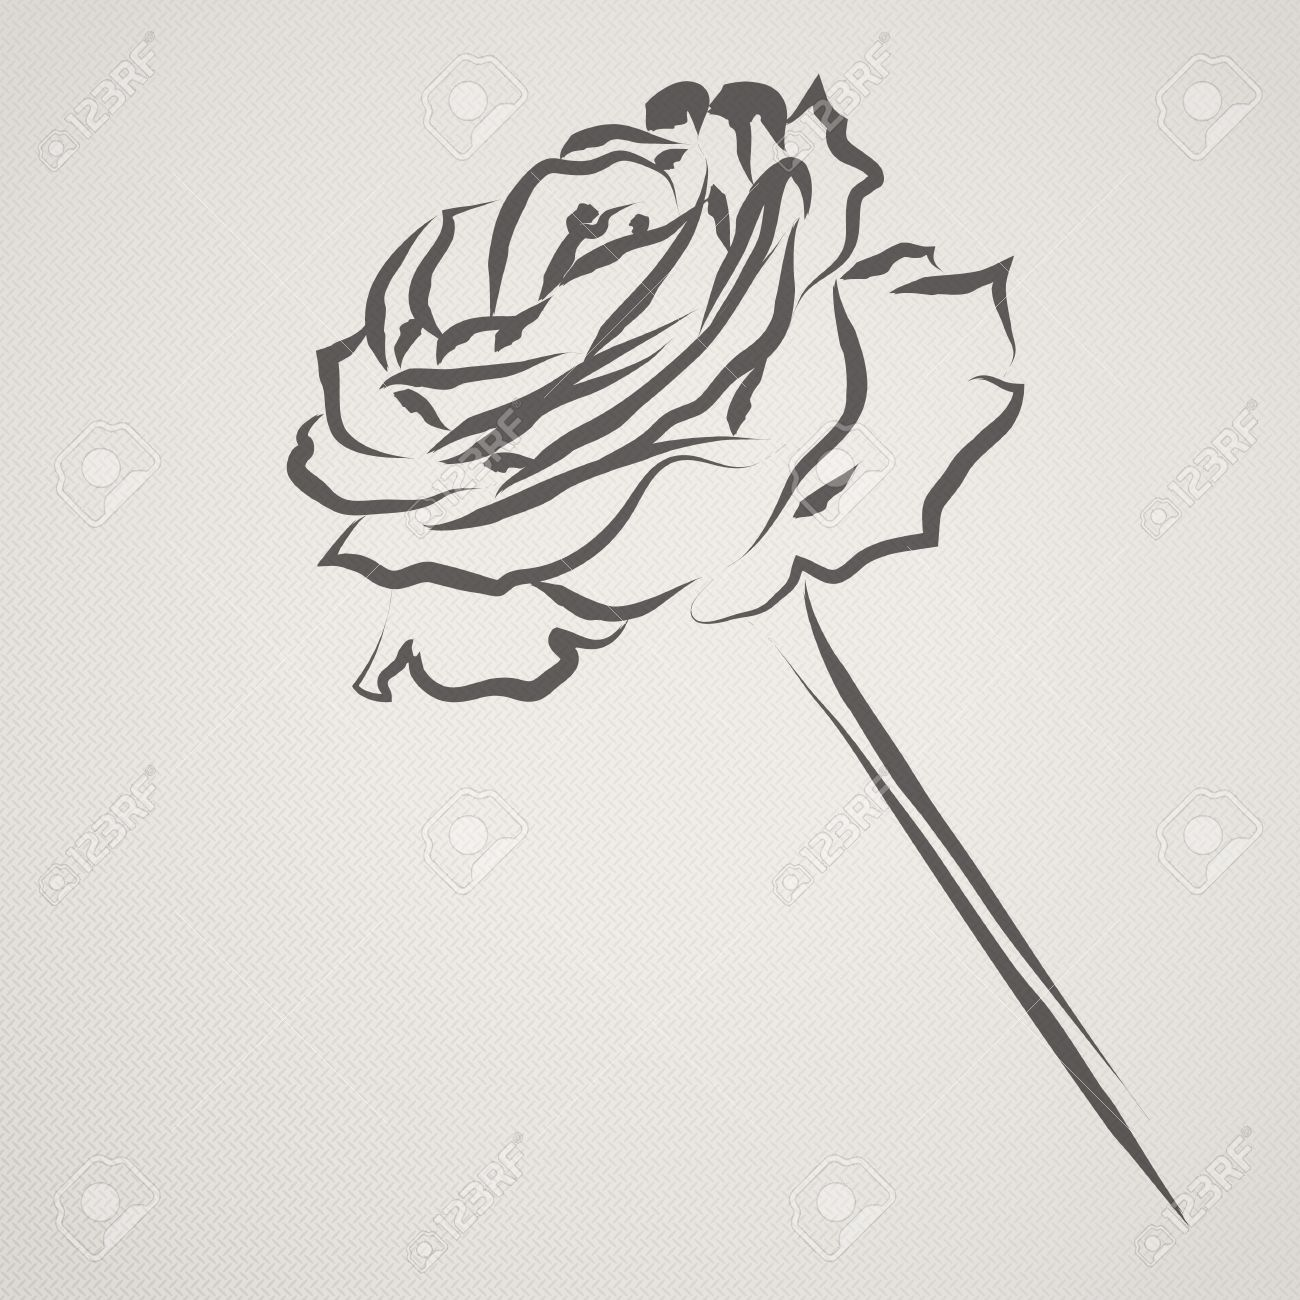 A Rose Drawn In An Ink Brush Style On A Textured Paper Effect ...